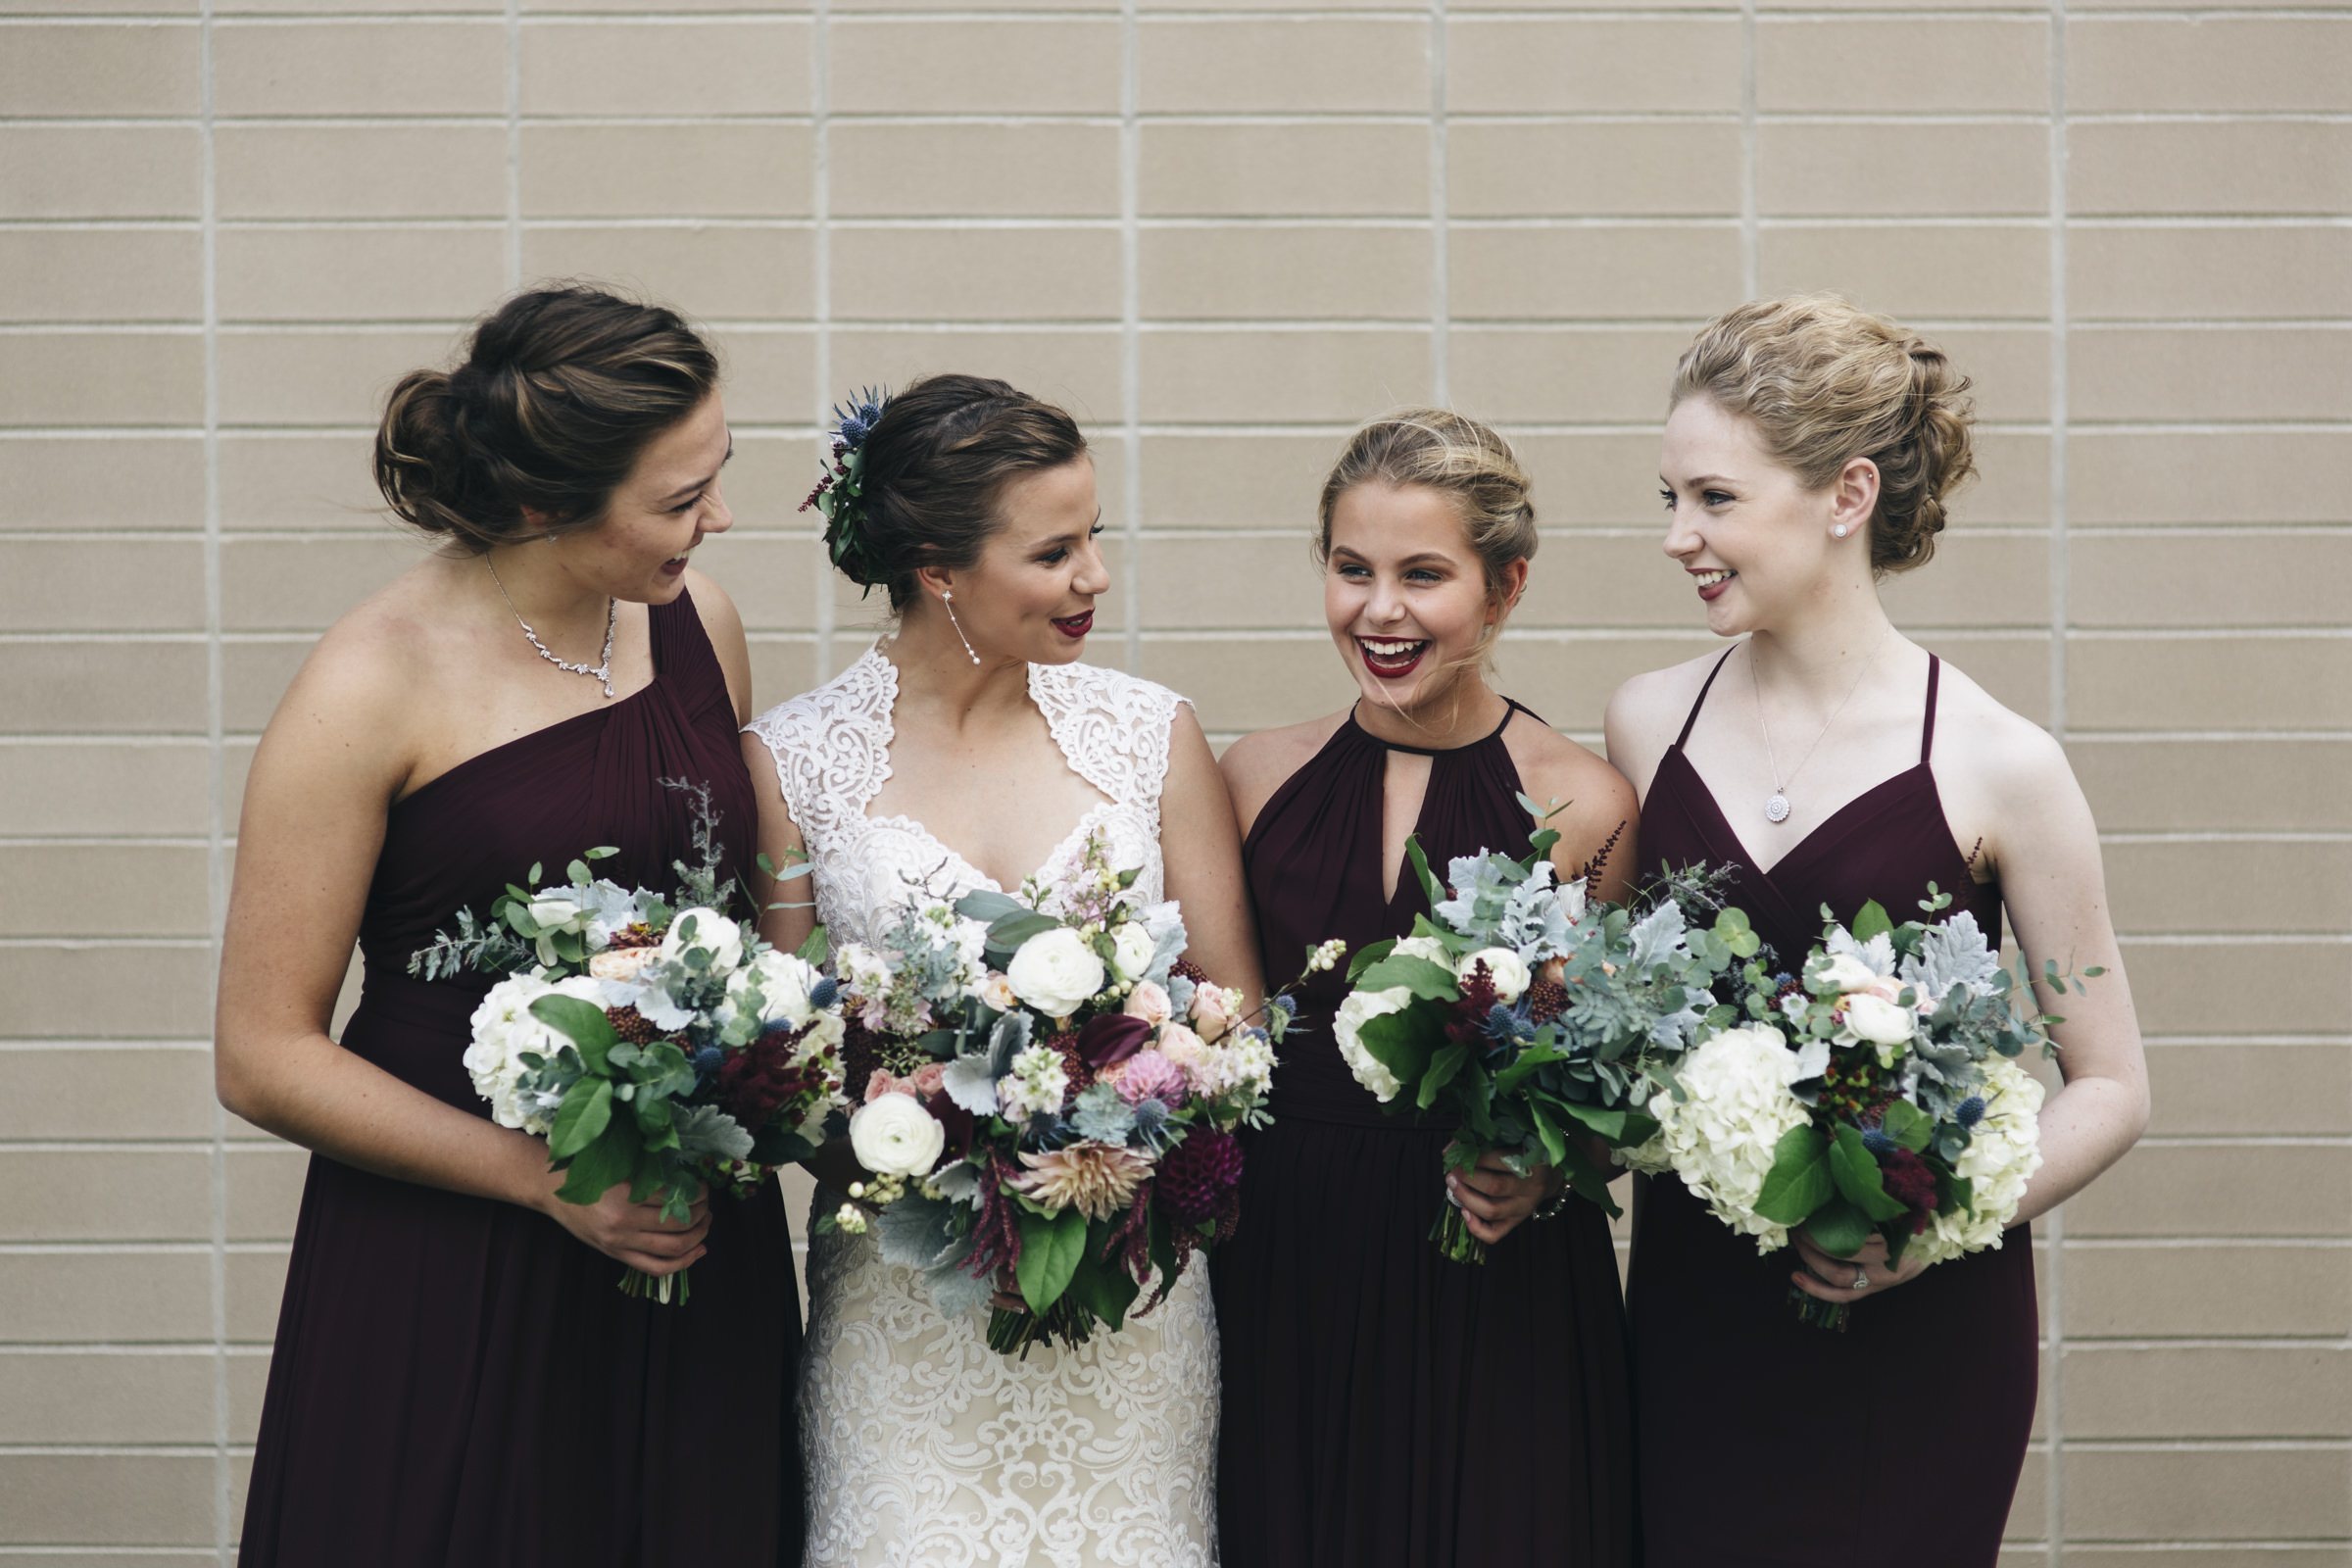 Bridesmaids smile and laugh with the bride before her wedding ceremony